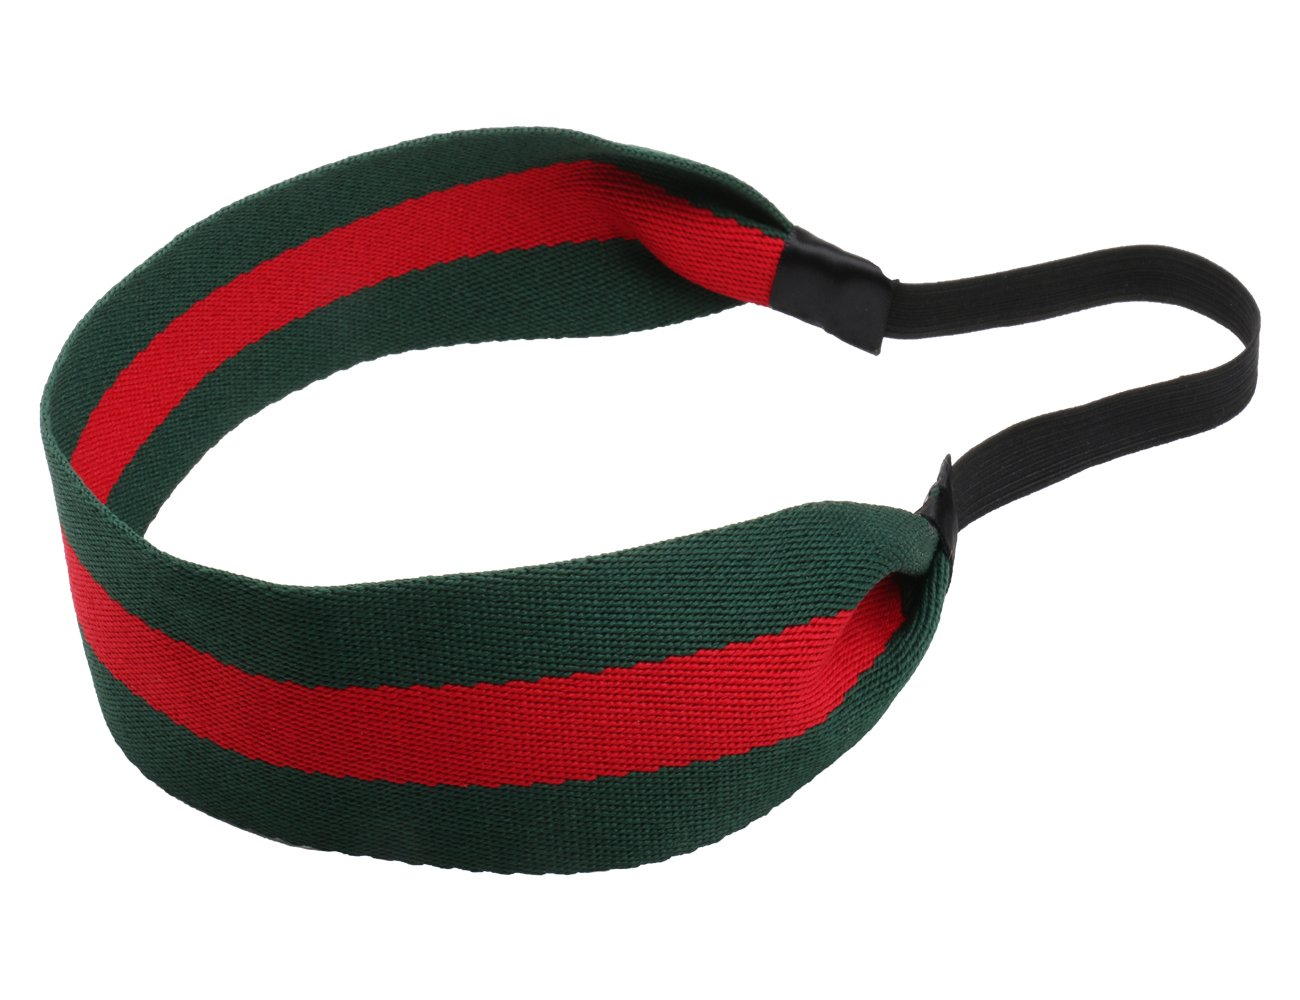 Girliber Handmade Headband Rubber Back, Headband for Women, Head Wear, Green and Red Rubber back